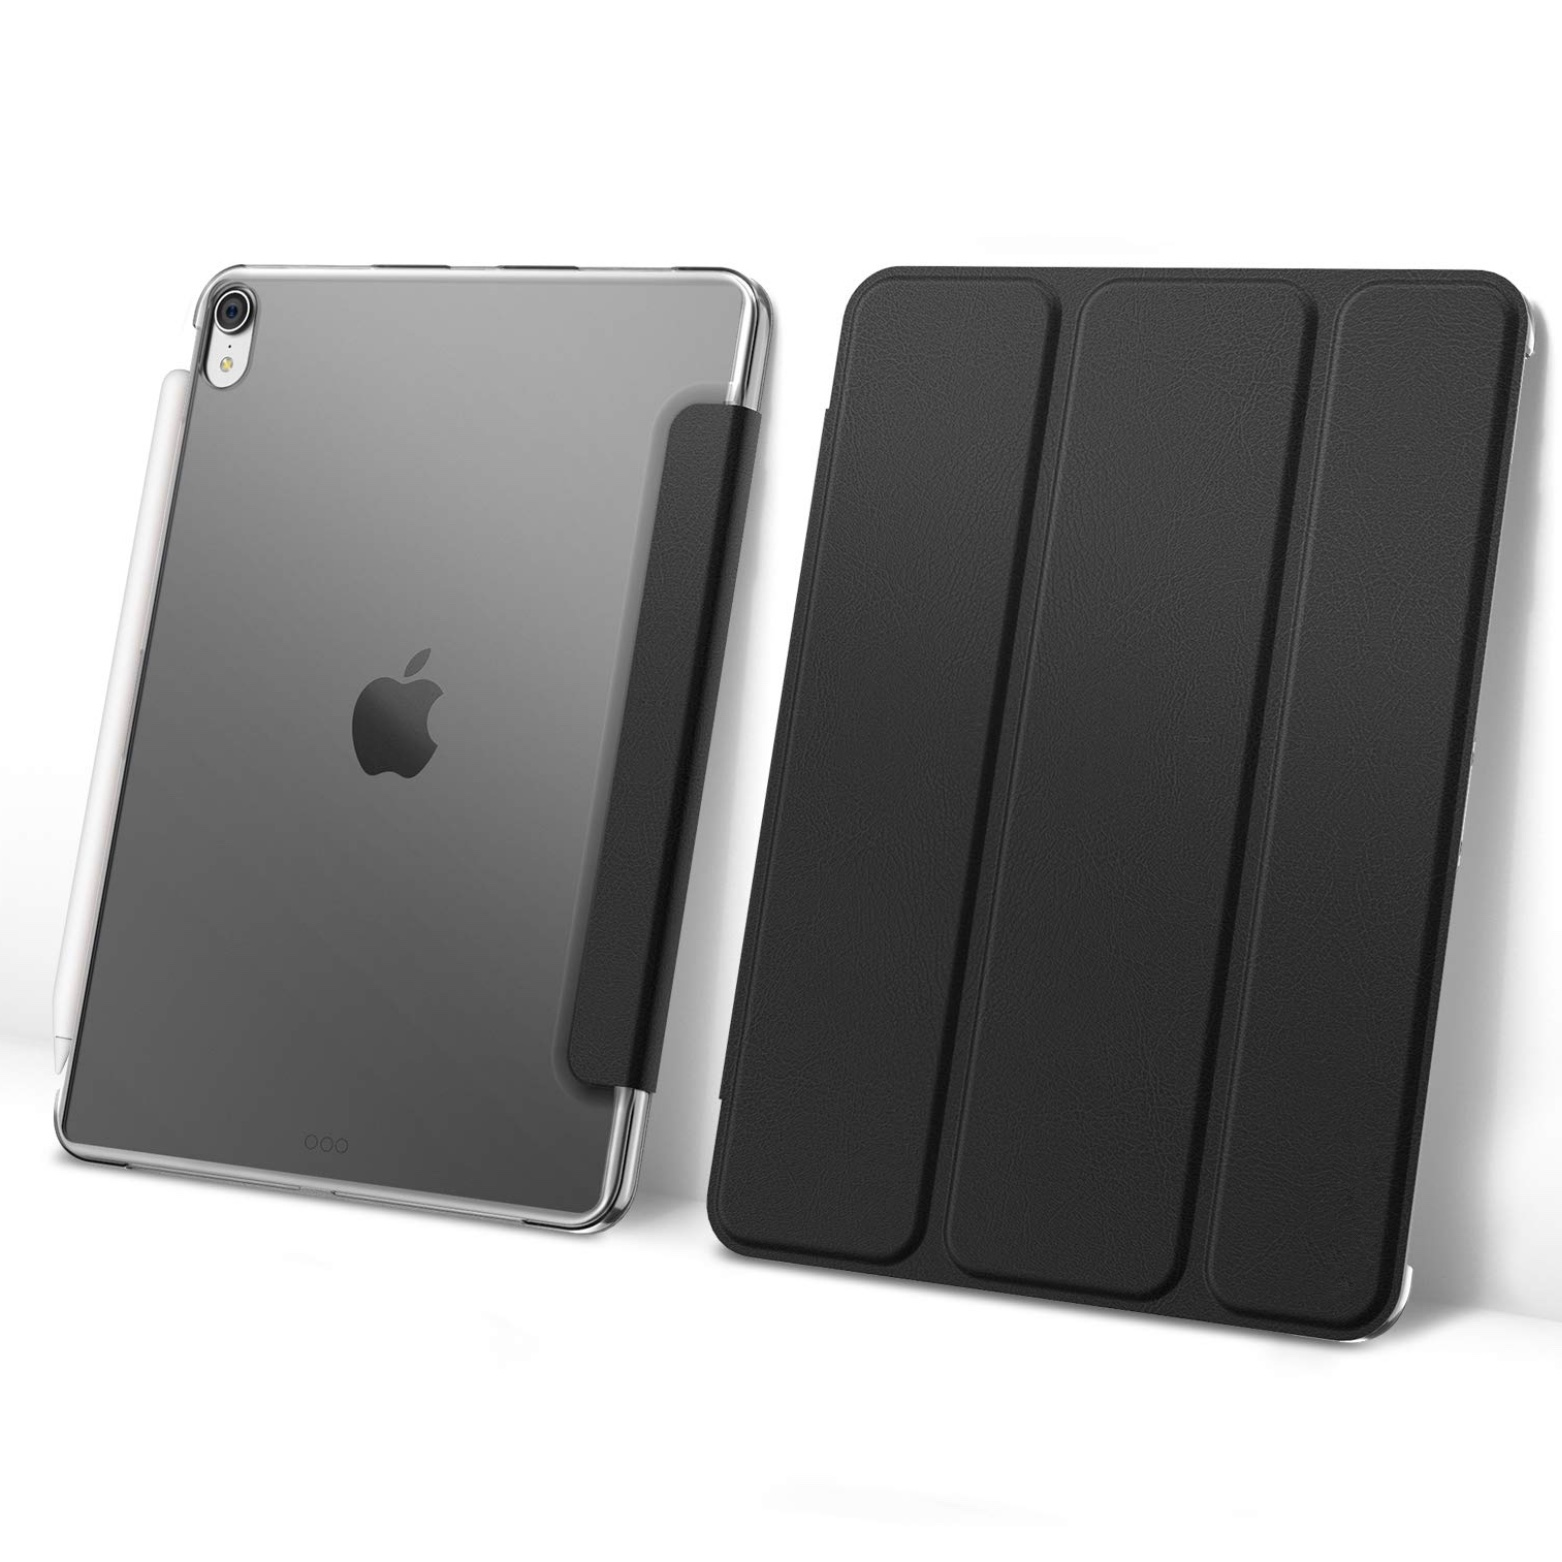 2 en 1 Etui Folio de protection iPAD PRO 2018 12.9p 3e Gen Transparent et verre protection ecran